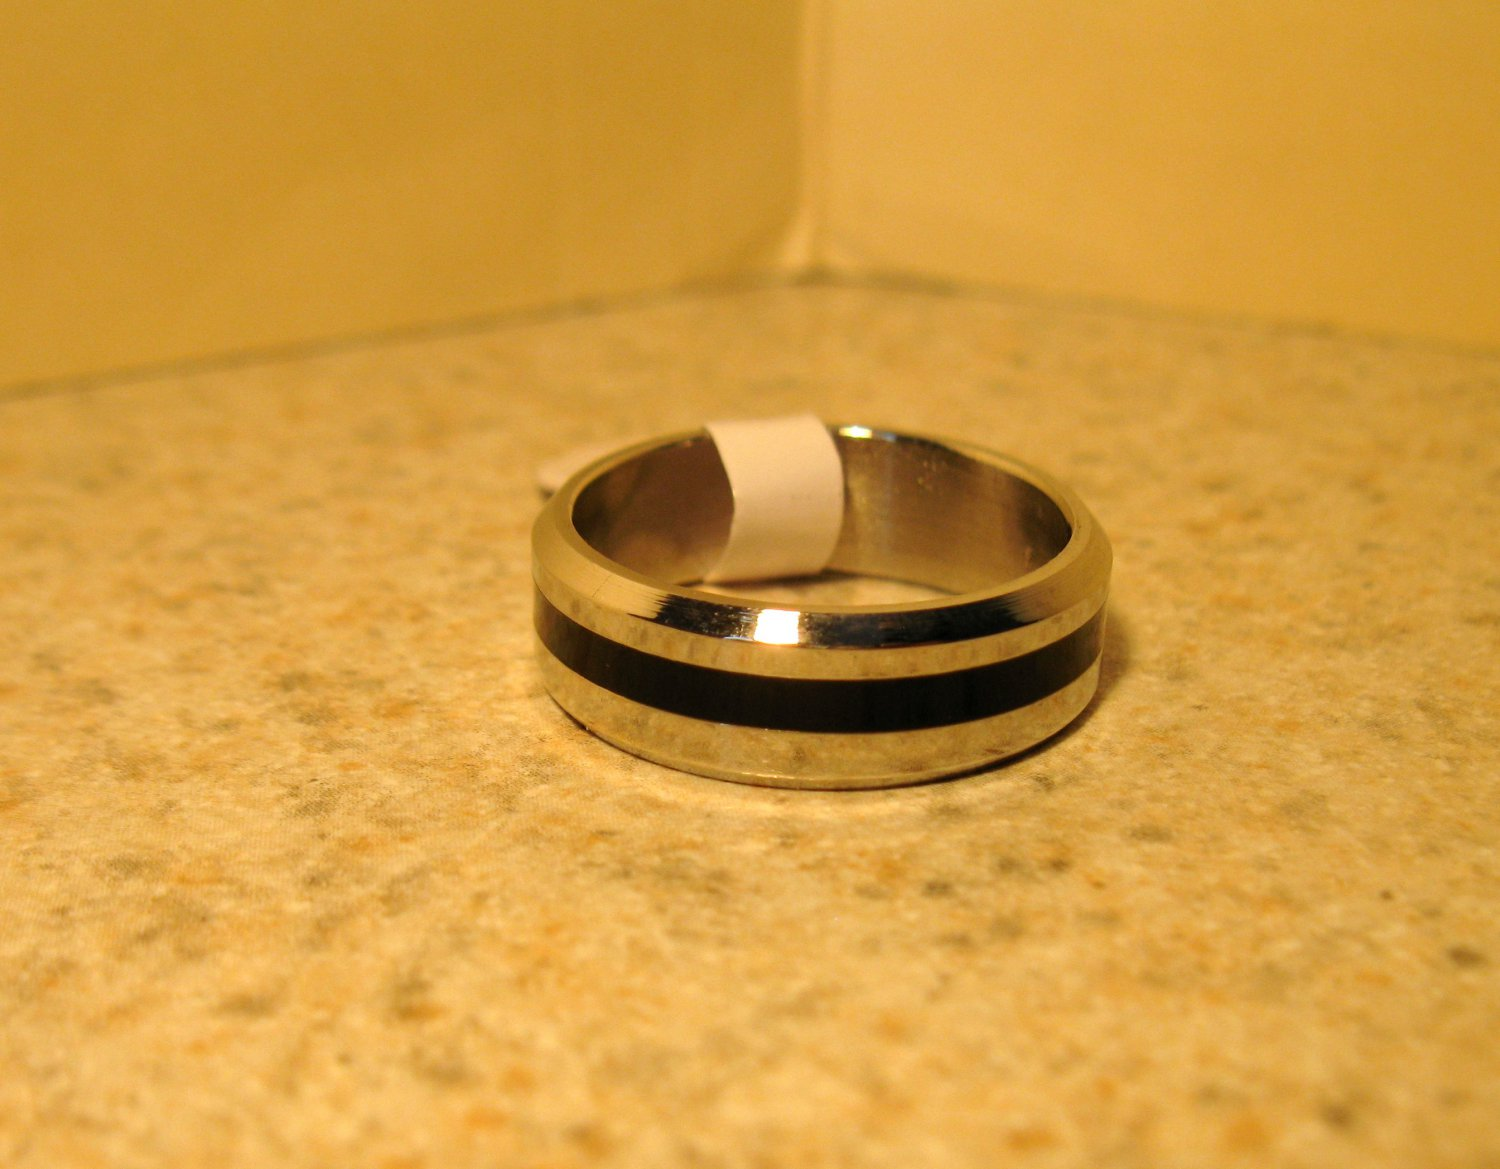 Silver with Black Wedding Band Rings Unisex Sizes 9 New #140